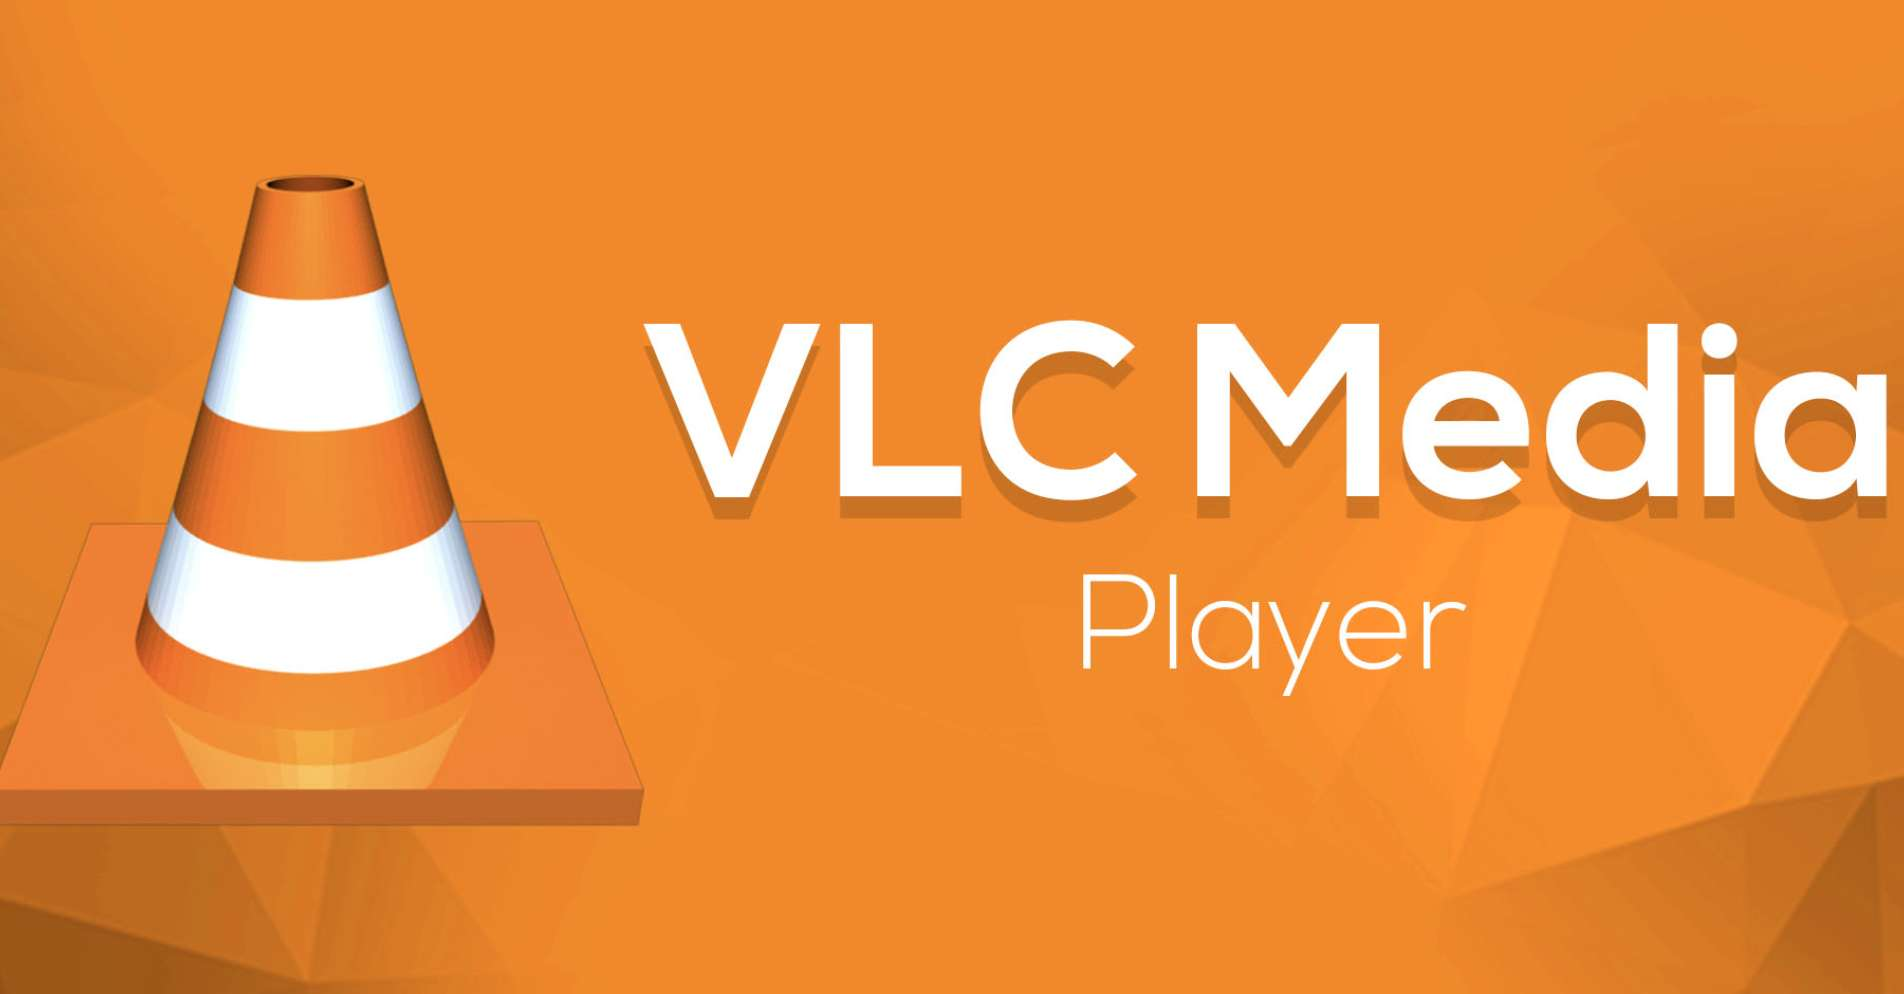 How To Install Vlc Firestick App Kfiretv